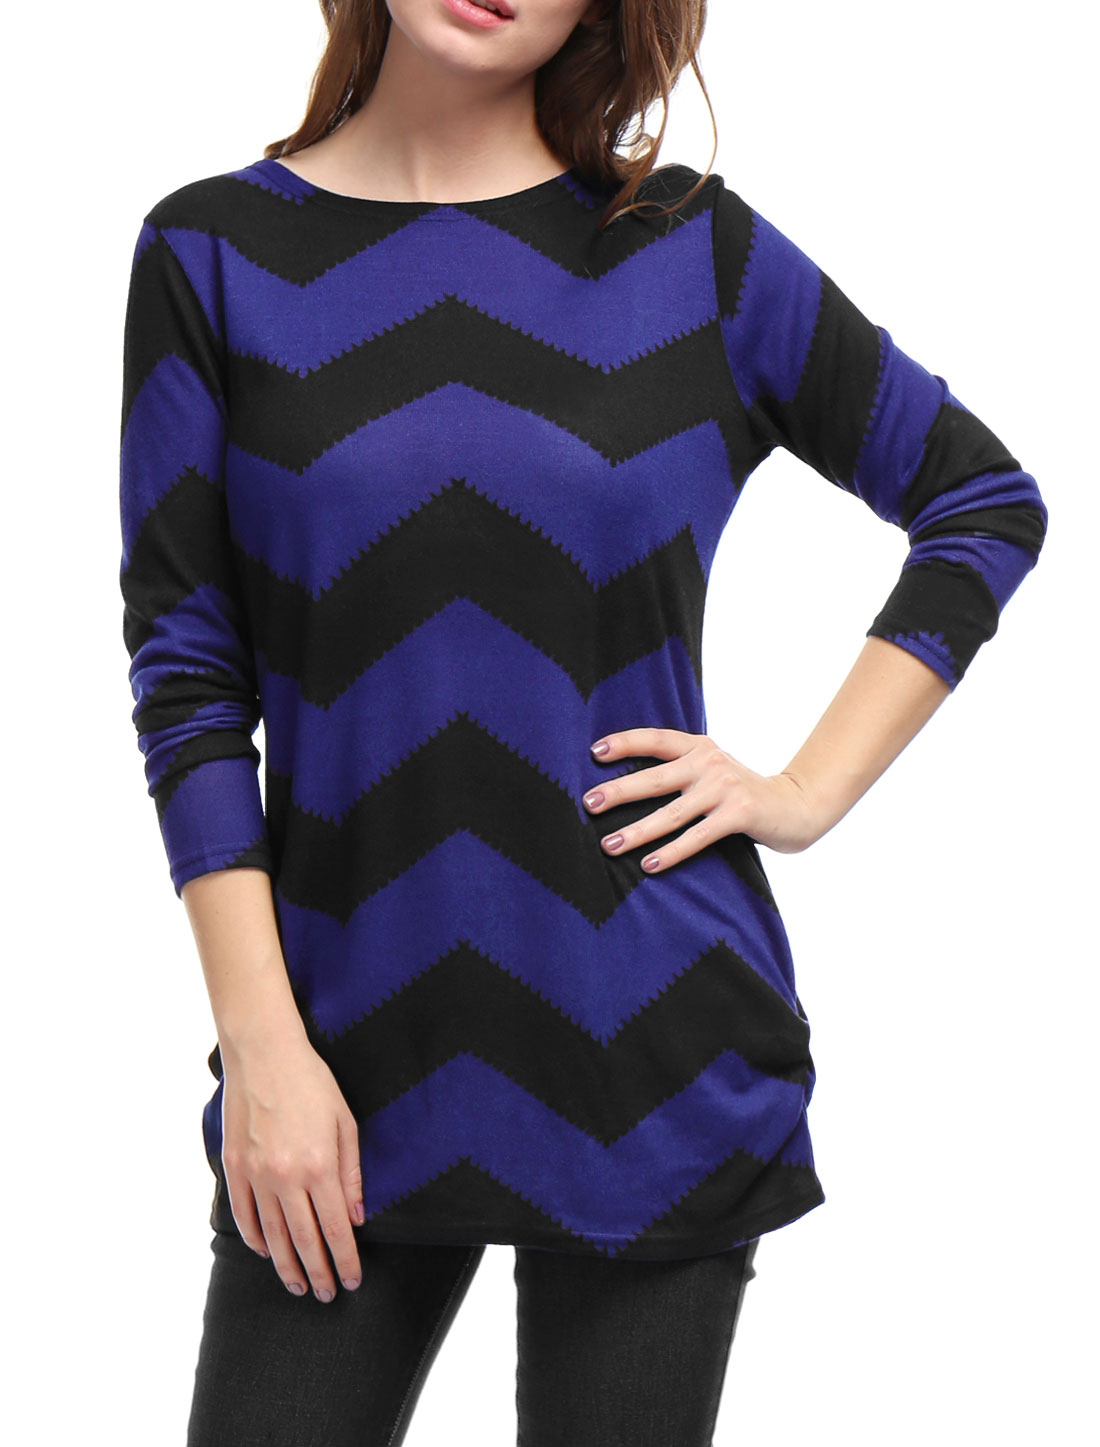 Allegra K Woman Zig-Zag Pattern Knitted Relax Fit Tunic Top Black Blue S